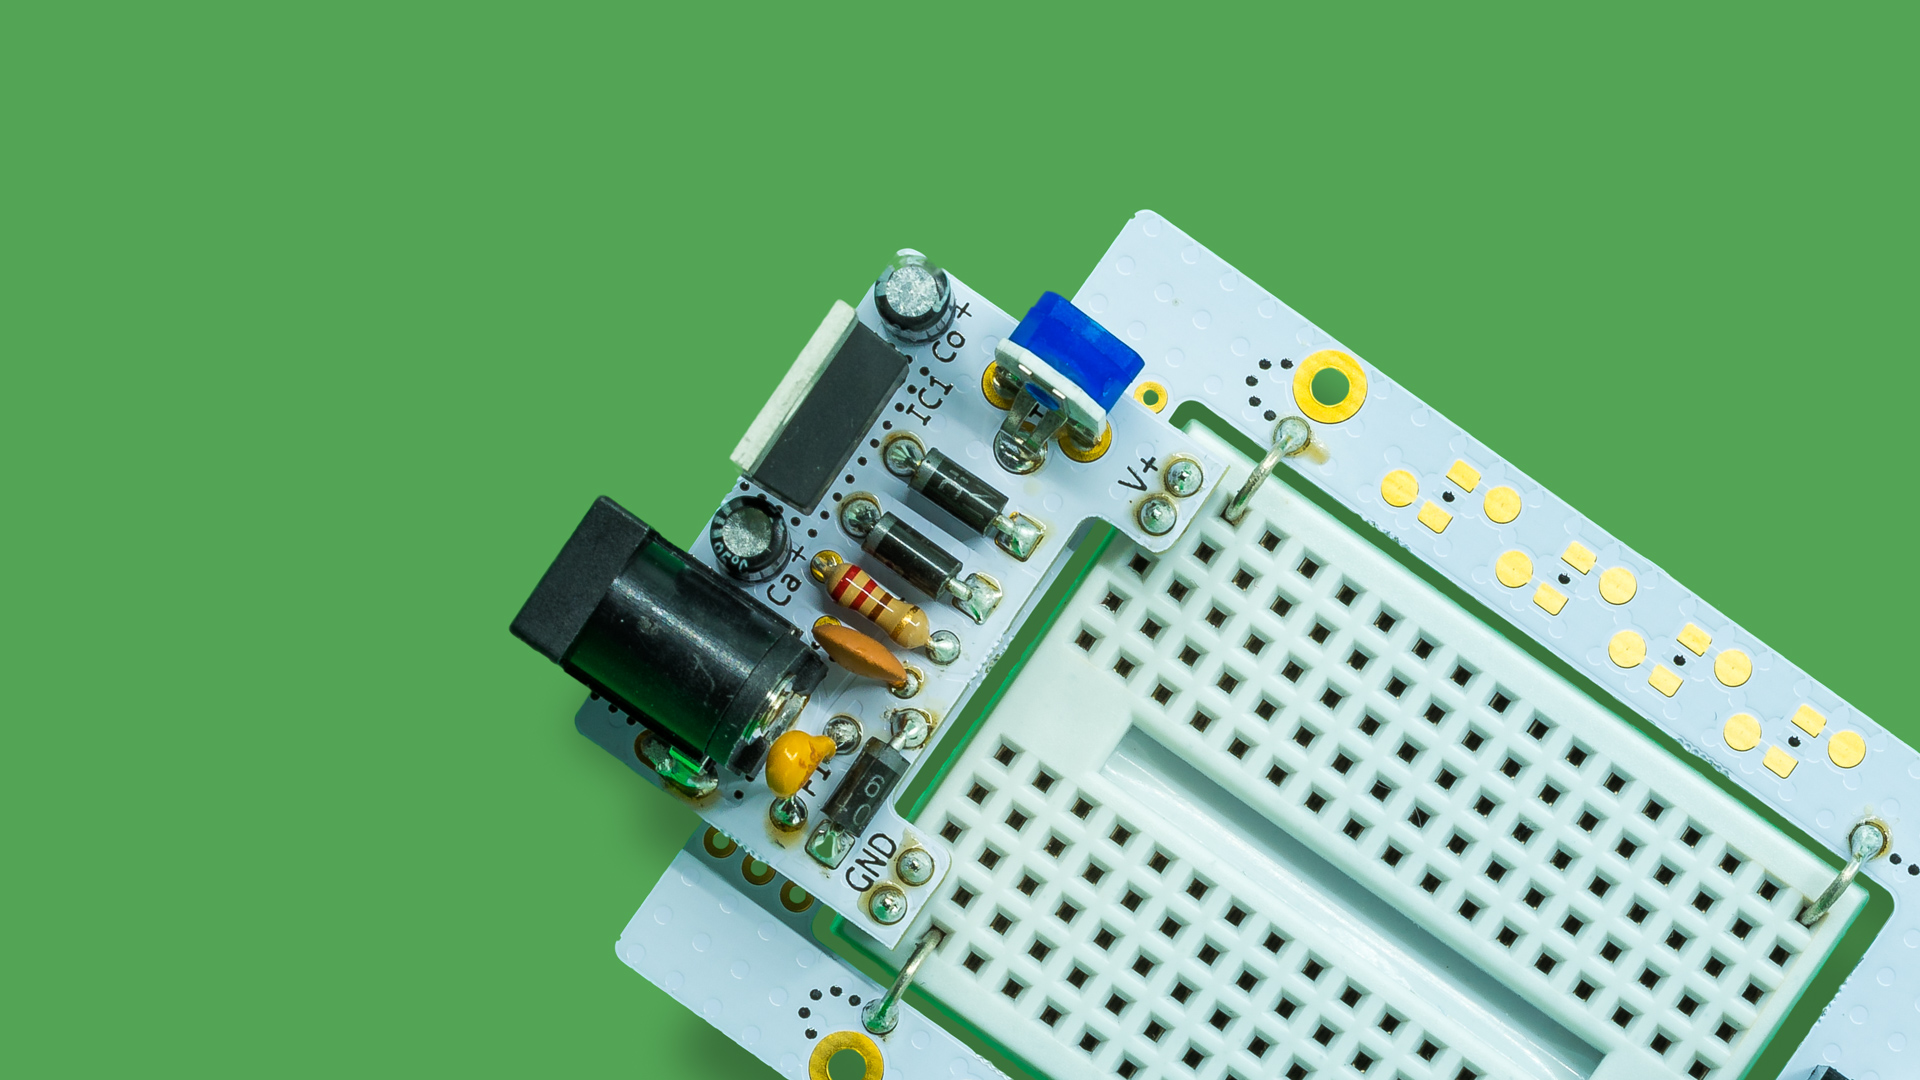 Whiteboard Project 22 Feb 2018 Boldportclub Community Variable Power Supplies Projects And Circuits It Consists Of Four Parts A 3v Coin Cell Plug In Module Linear Supply Smd Adaptor Supporting Coverlet